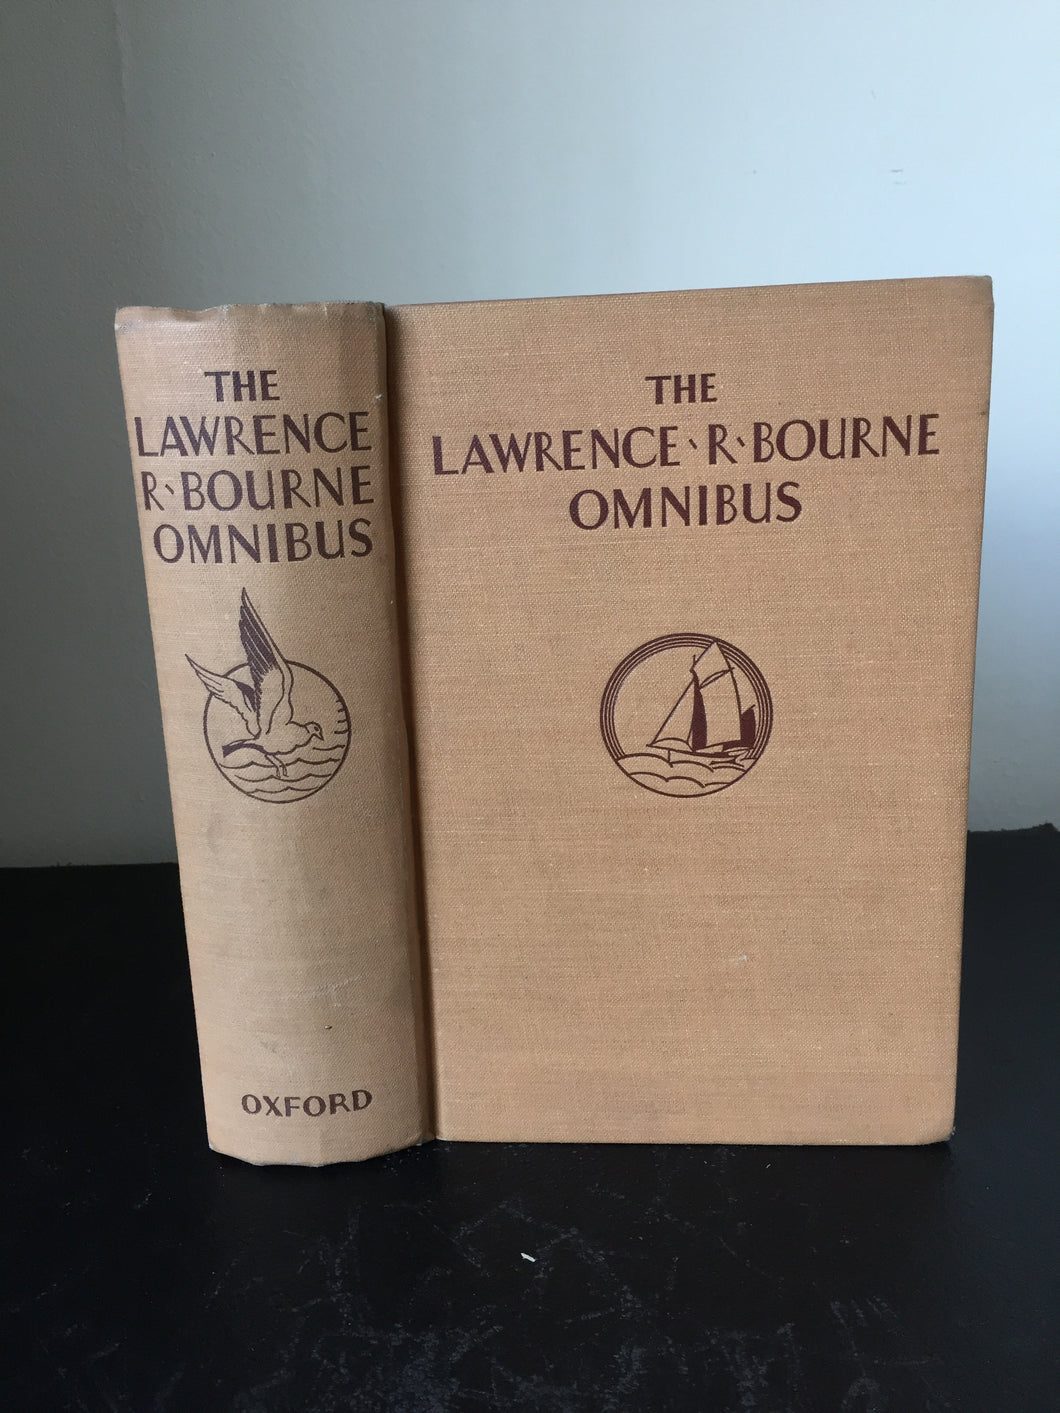 The Lawrence R. Bourne Omnibus